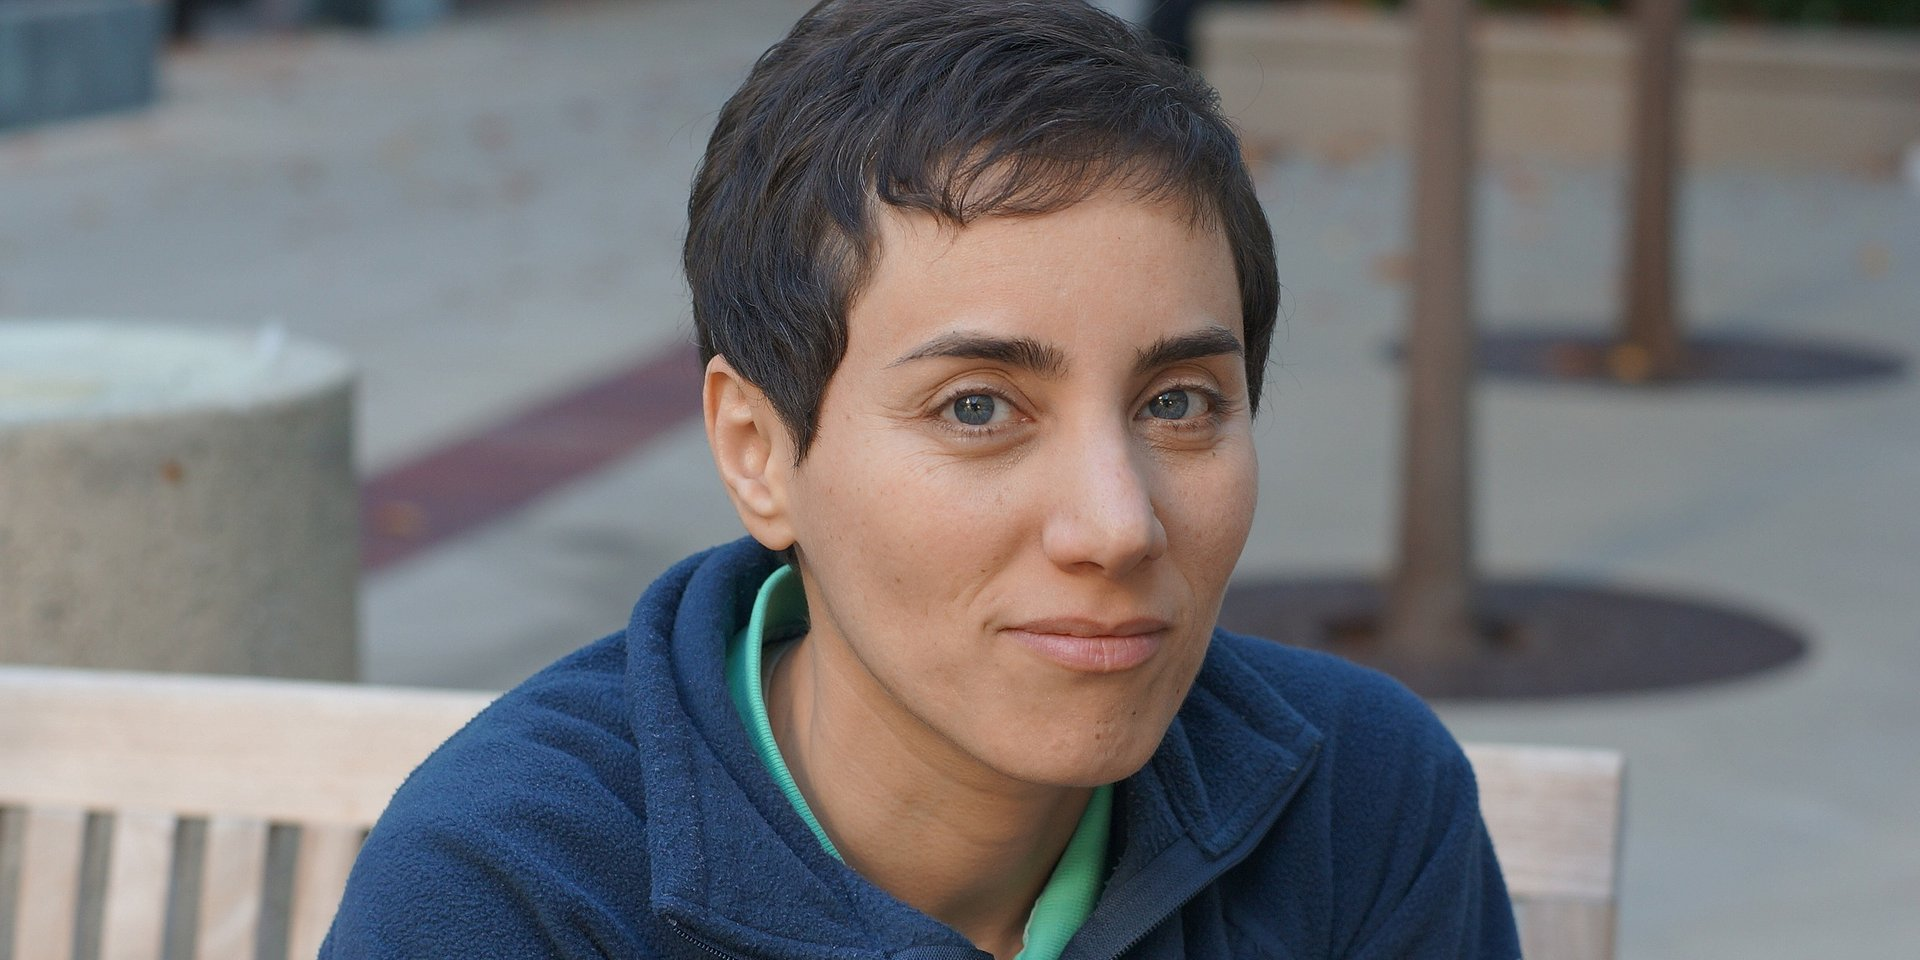 Mathematical Association of America Launches the Maryam Mirzakhani AMC 10 Prize and Awards to Support Women in Mathematics